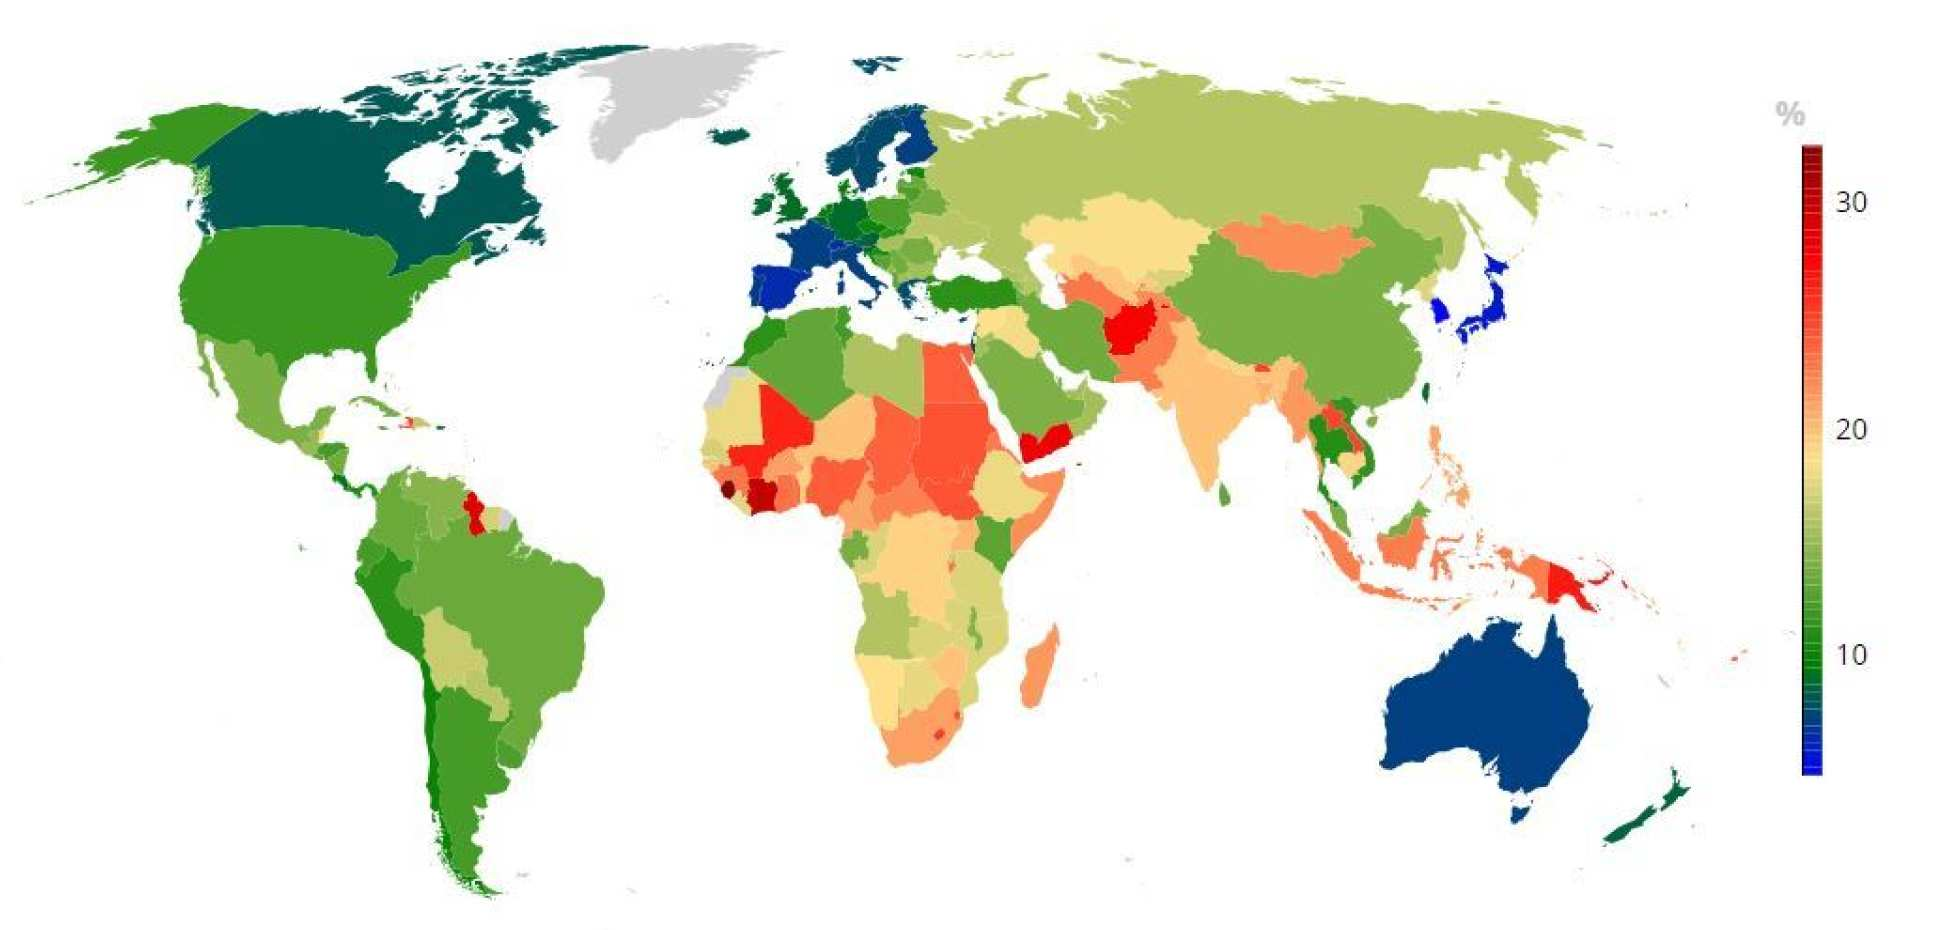 World map showing the probability of dying early from chronic disease between 30 and 70 years of age